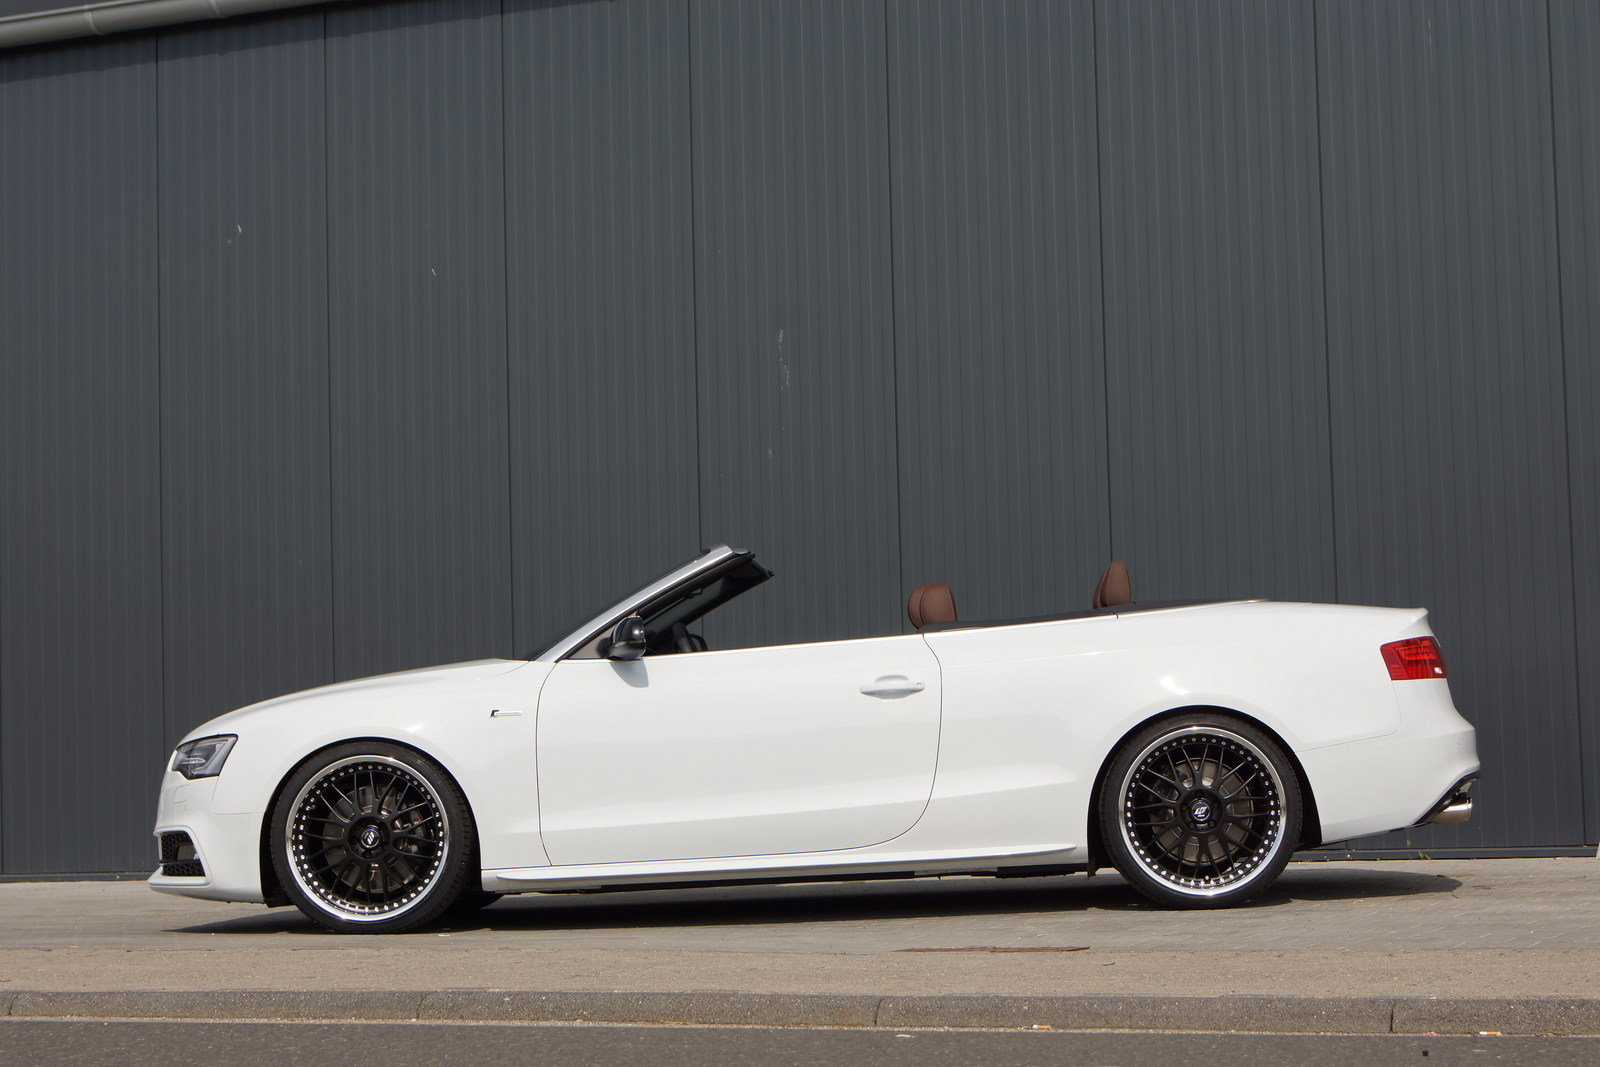 http://pictures.topspeed.com/IMG/crop/201306/audi-s5-convertible--3_1600x0w.jpg